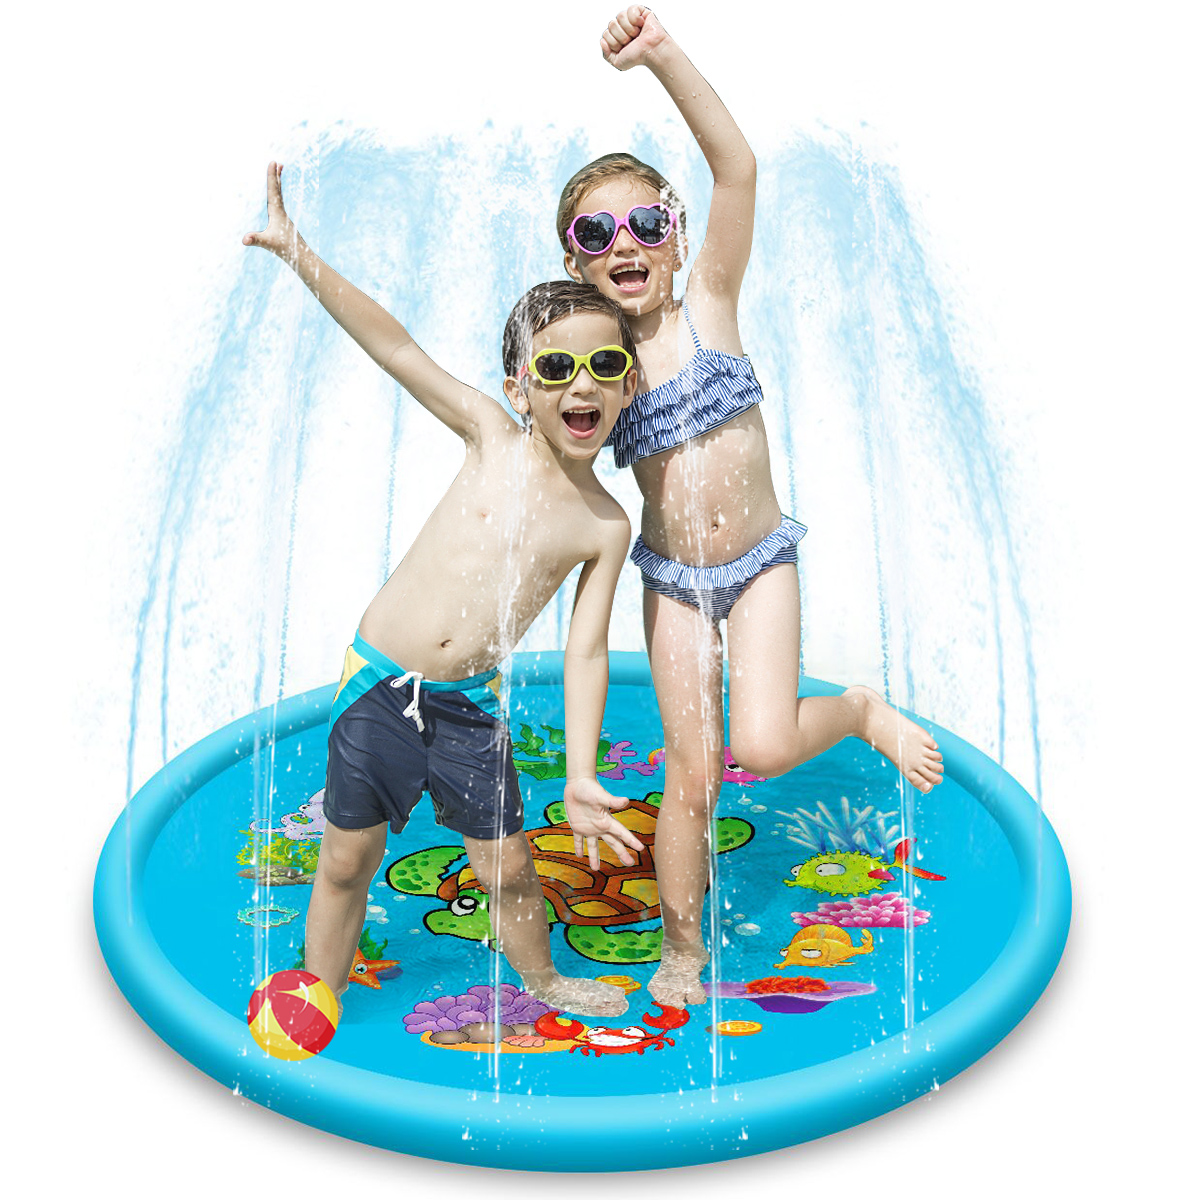 43Inch/67Inch Sprinkler Splash Water Play Mat Outdoor Inflatable Kids Toddler Fountain Play Pad For Relaxation Party Gift